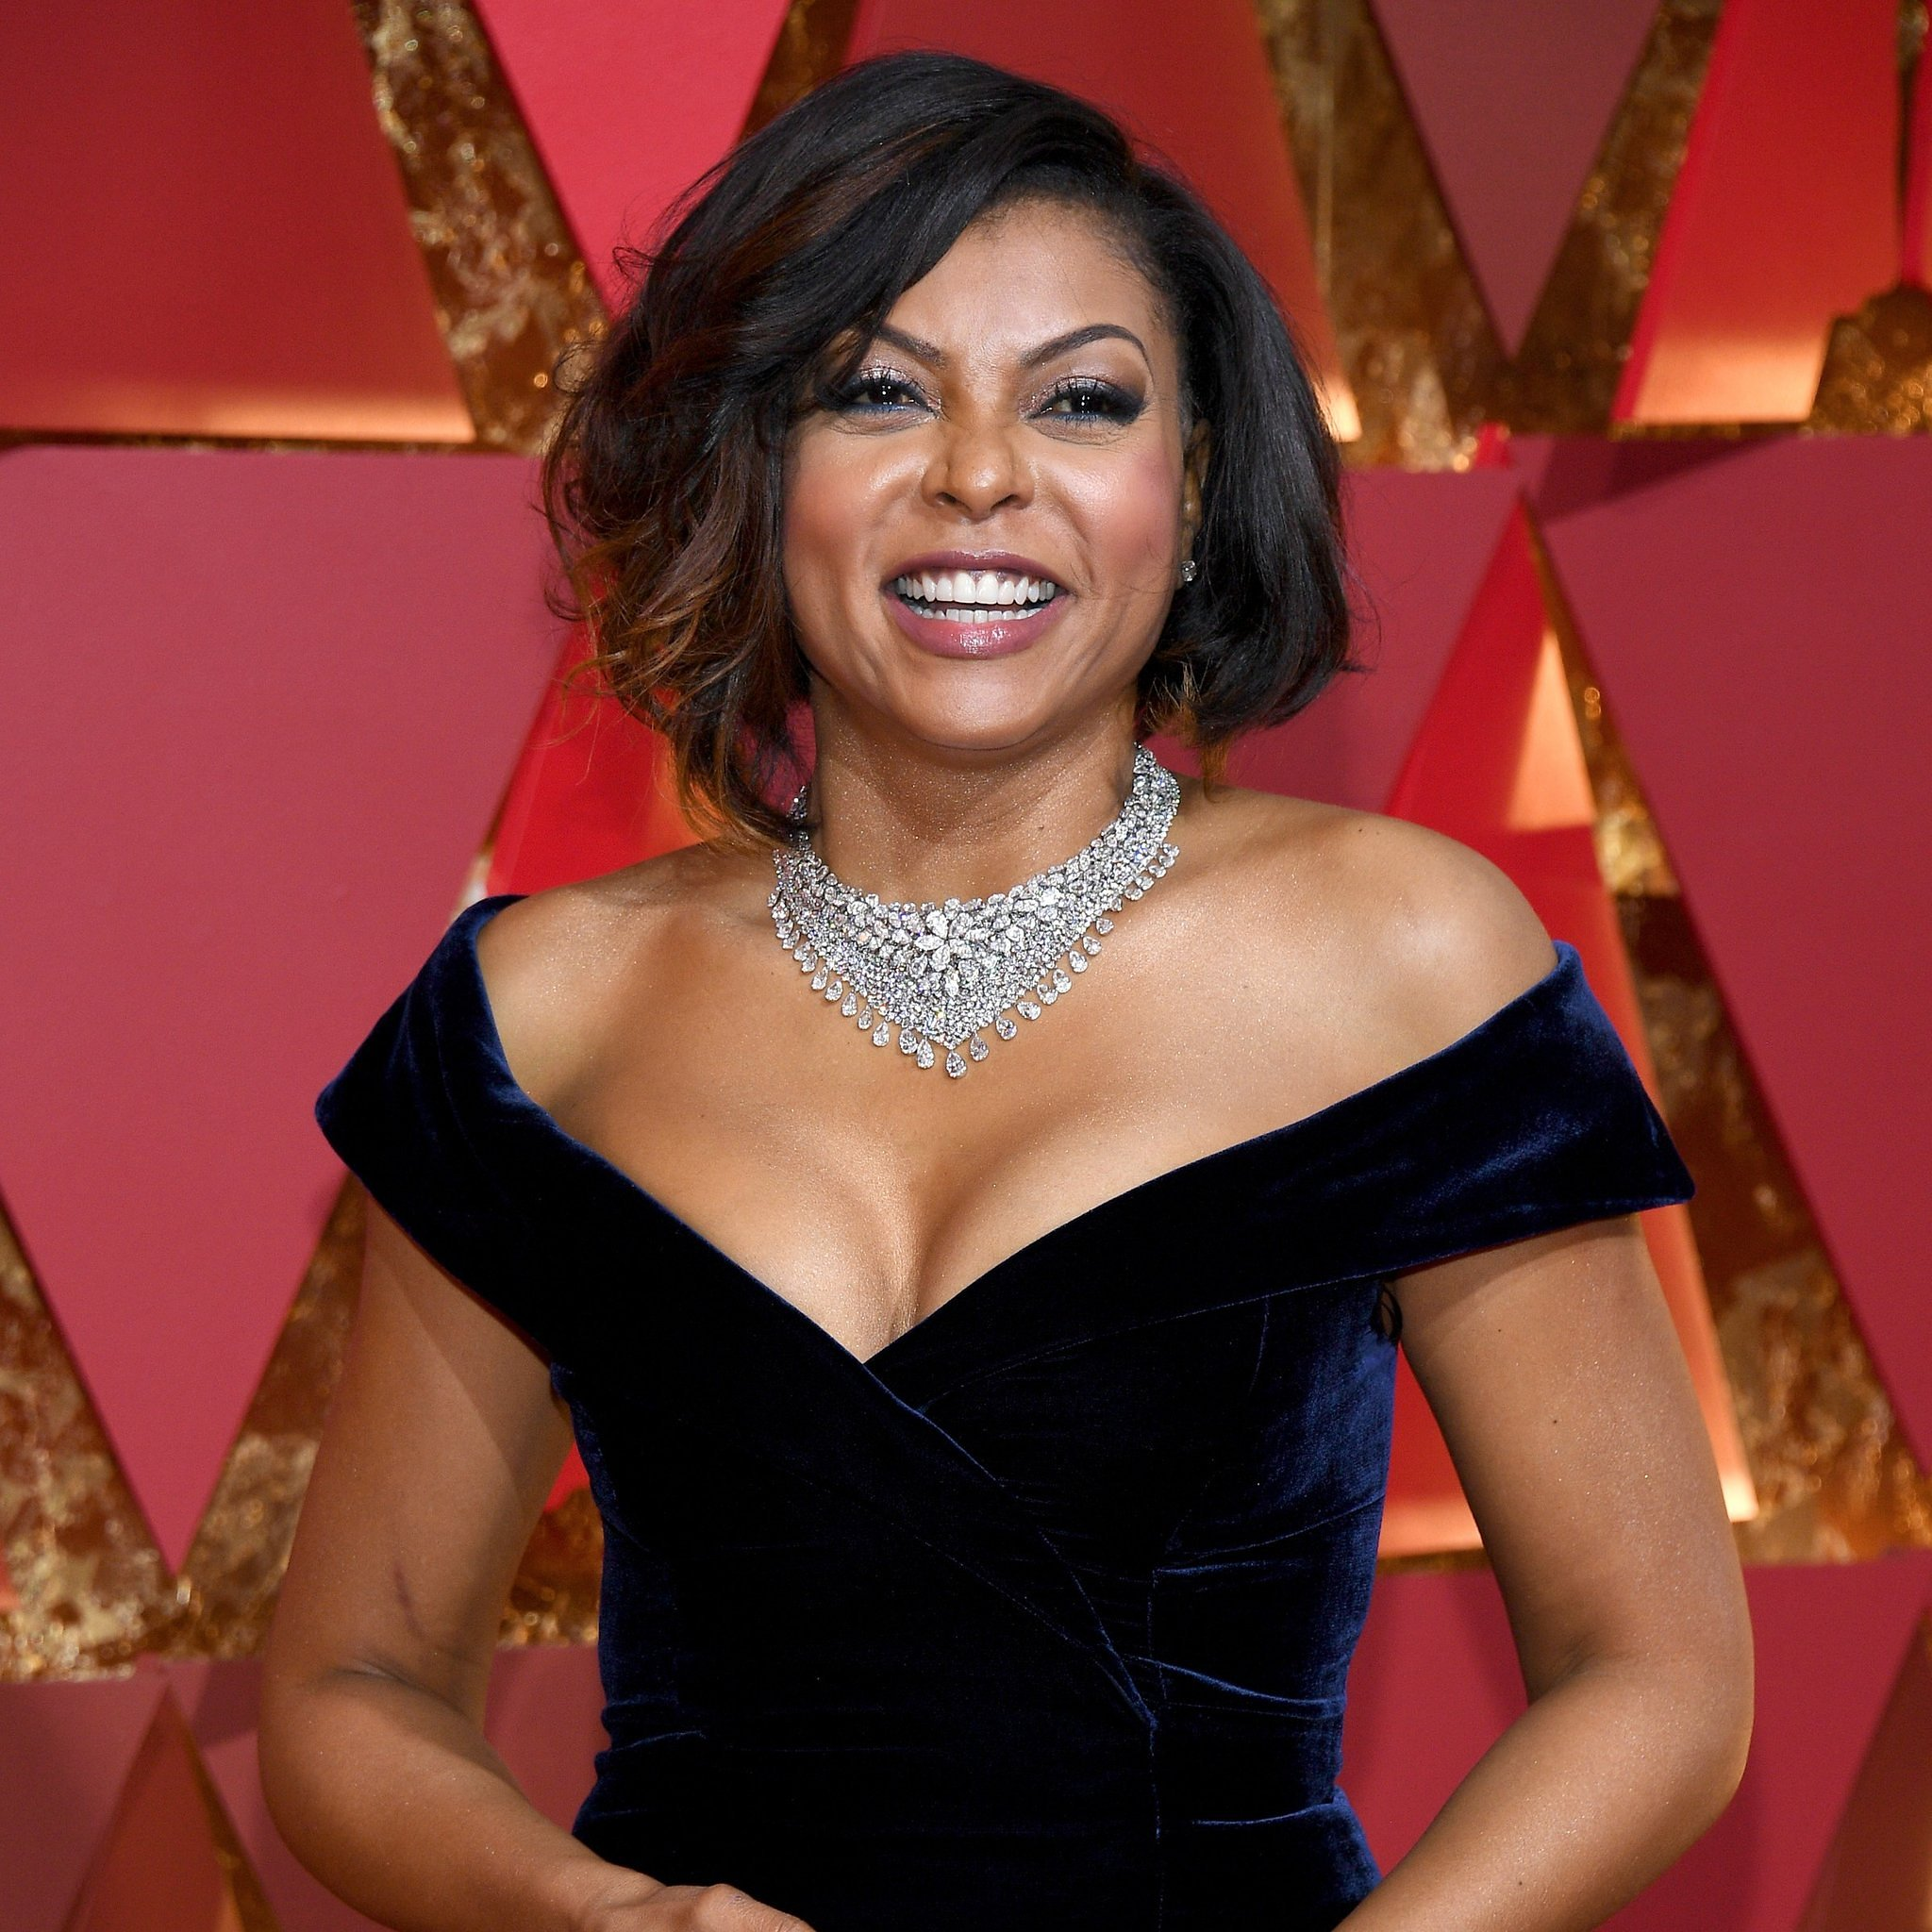 wishes Taraji P. Henson, a very happy birthday